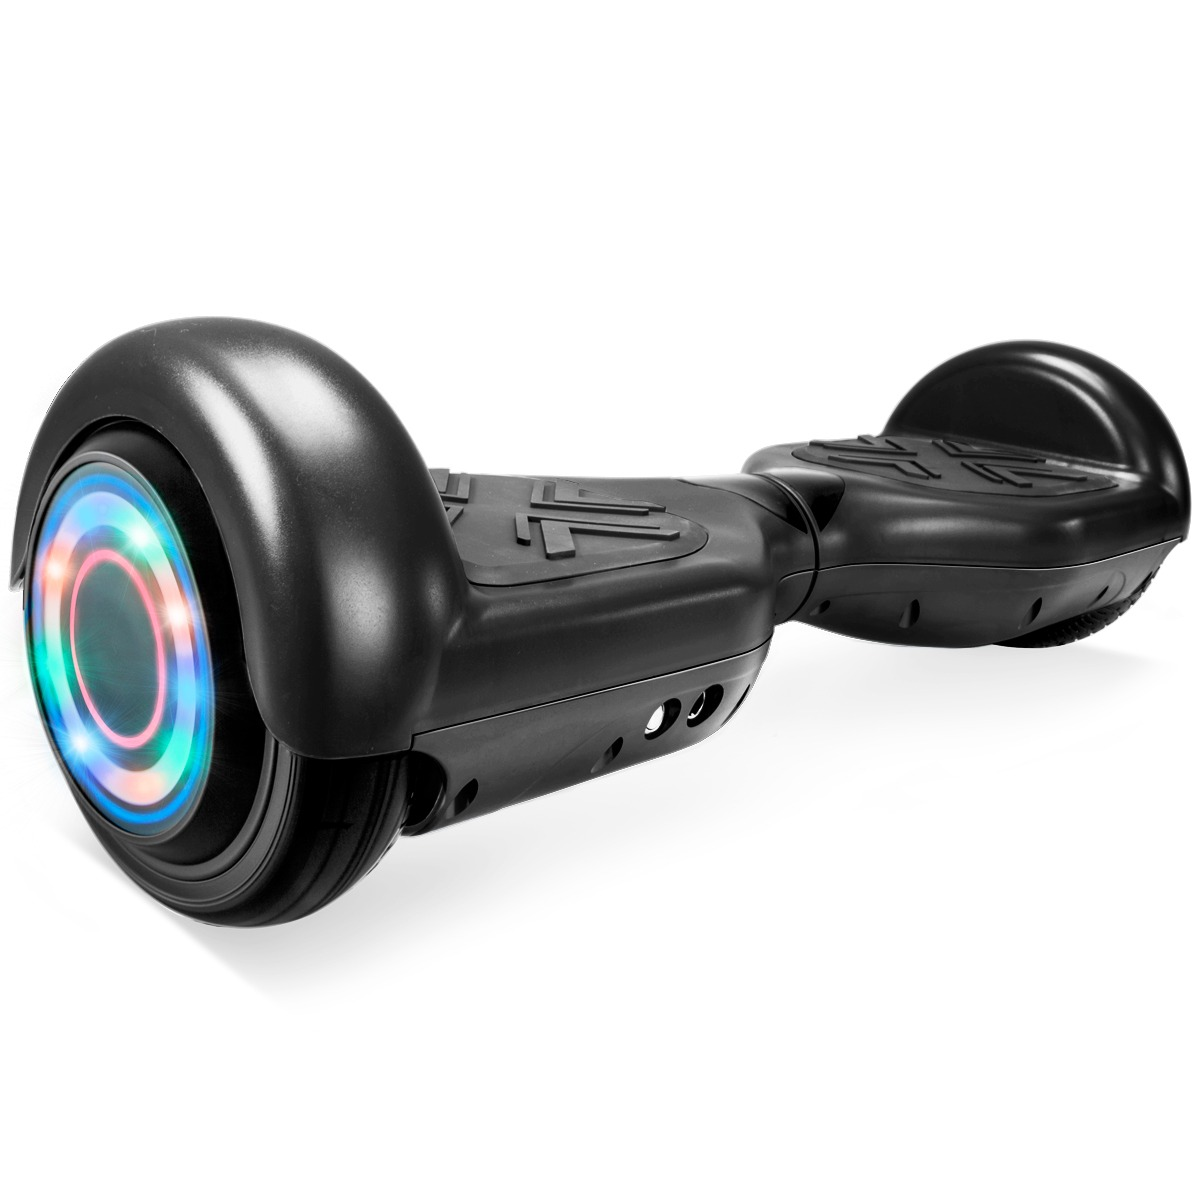 "XtremepowerUS 6.5"" Self Balancing Hoverboard Scooter w/ Bluetooth Speaker Black"